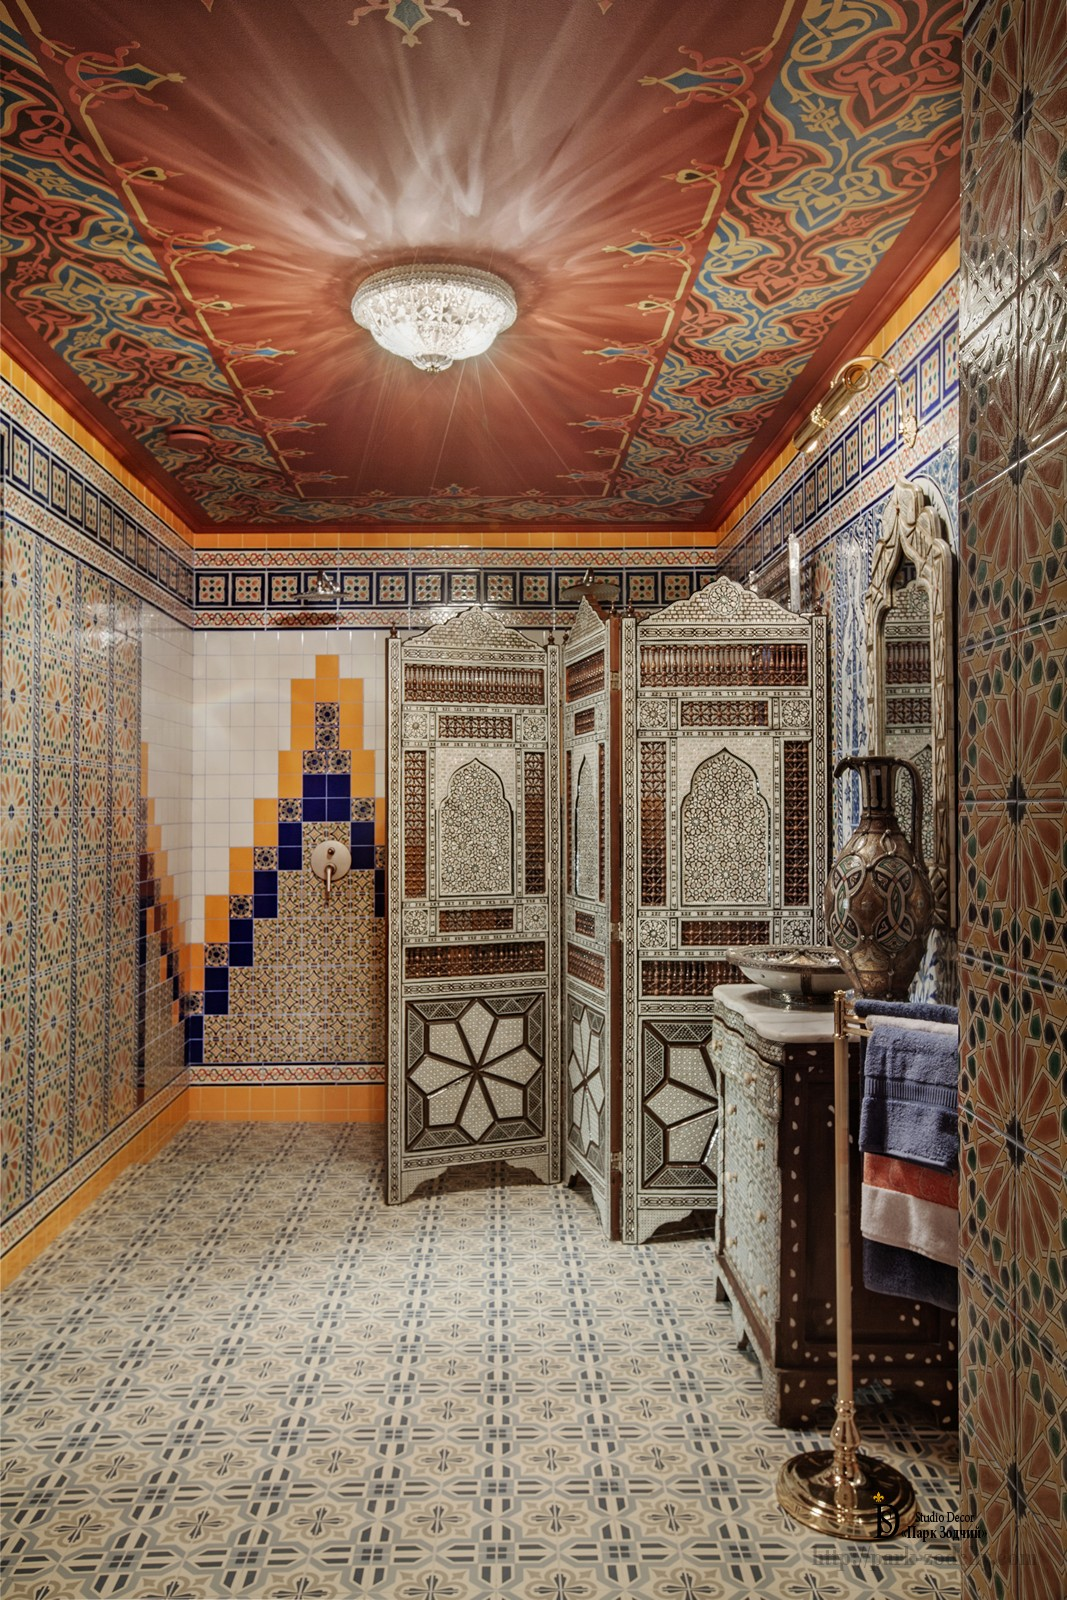 Hammam recreation area interior with ceiling painting